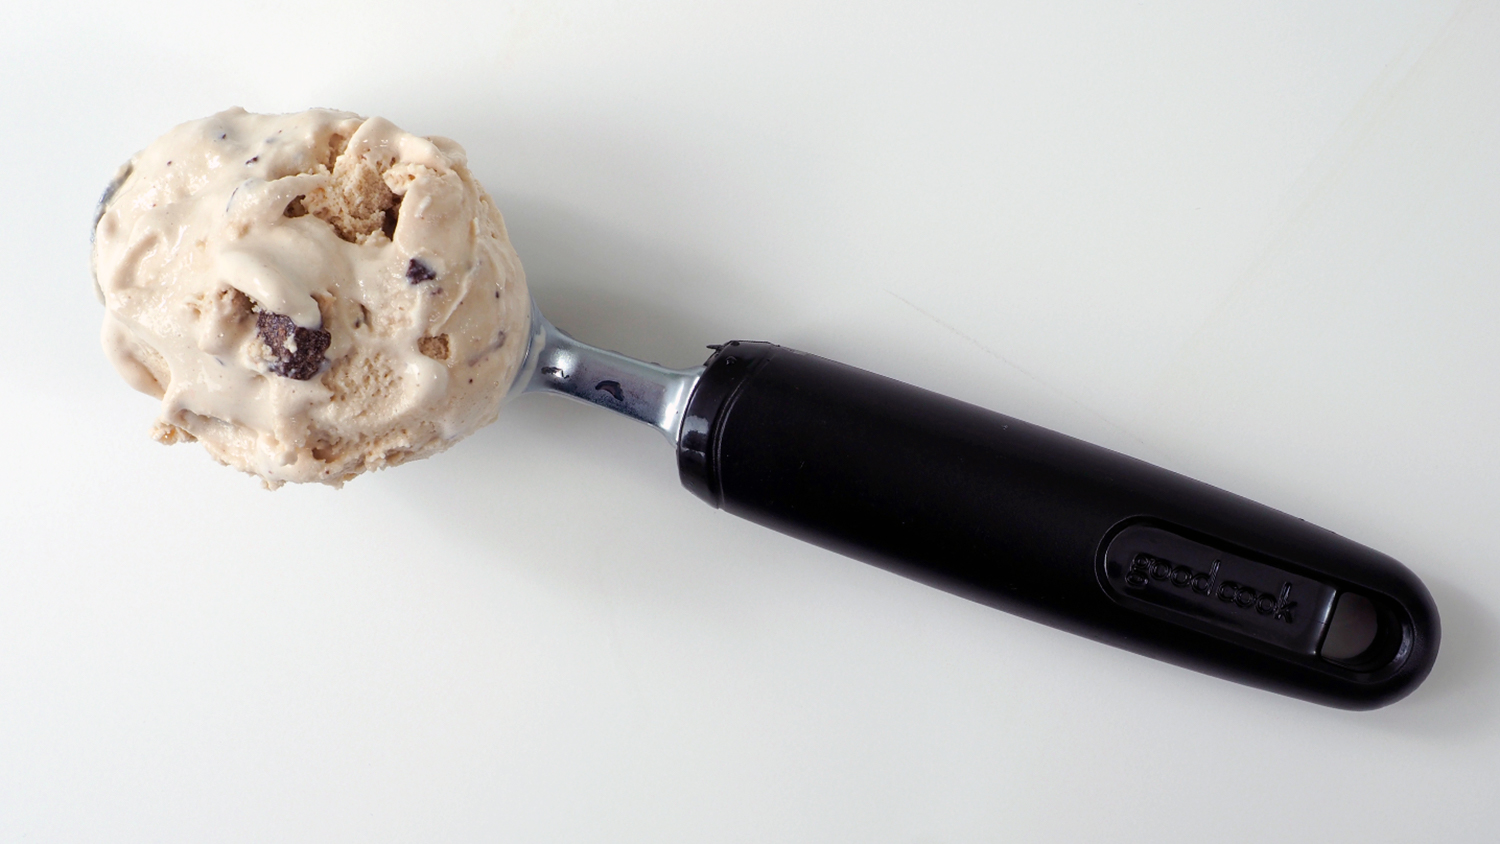 A scoop of Campfire Delight ice cream on a scooper